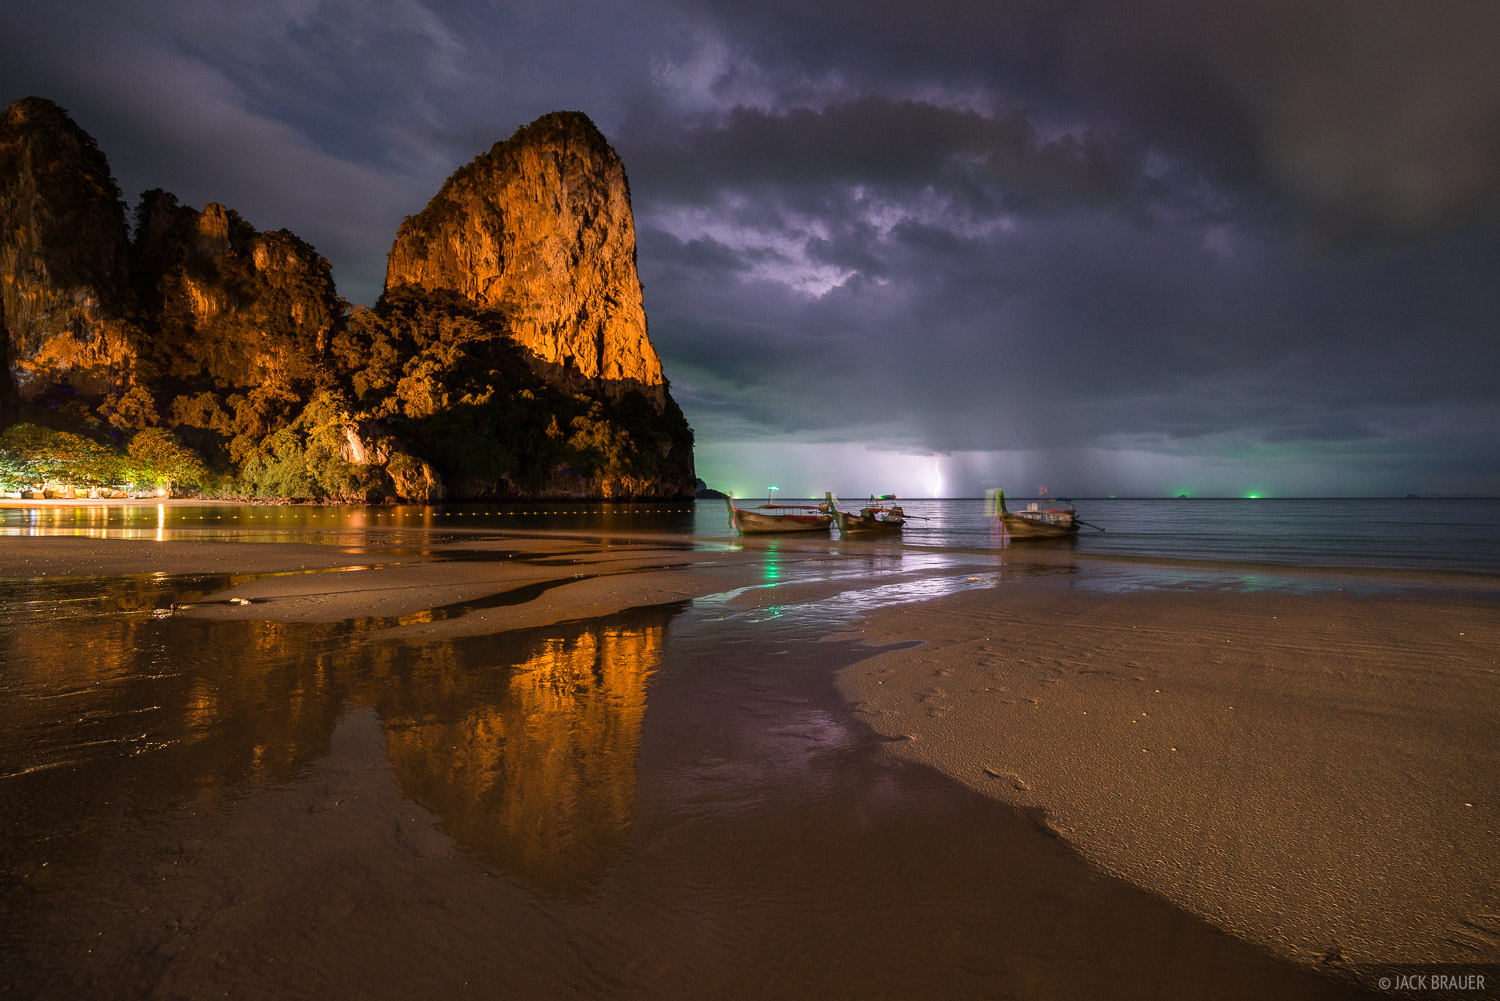 Lightning over the Andaman Sea as a tropical thunderstorm passes over Railay Beach.